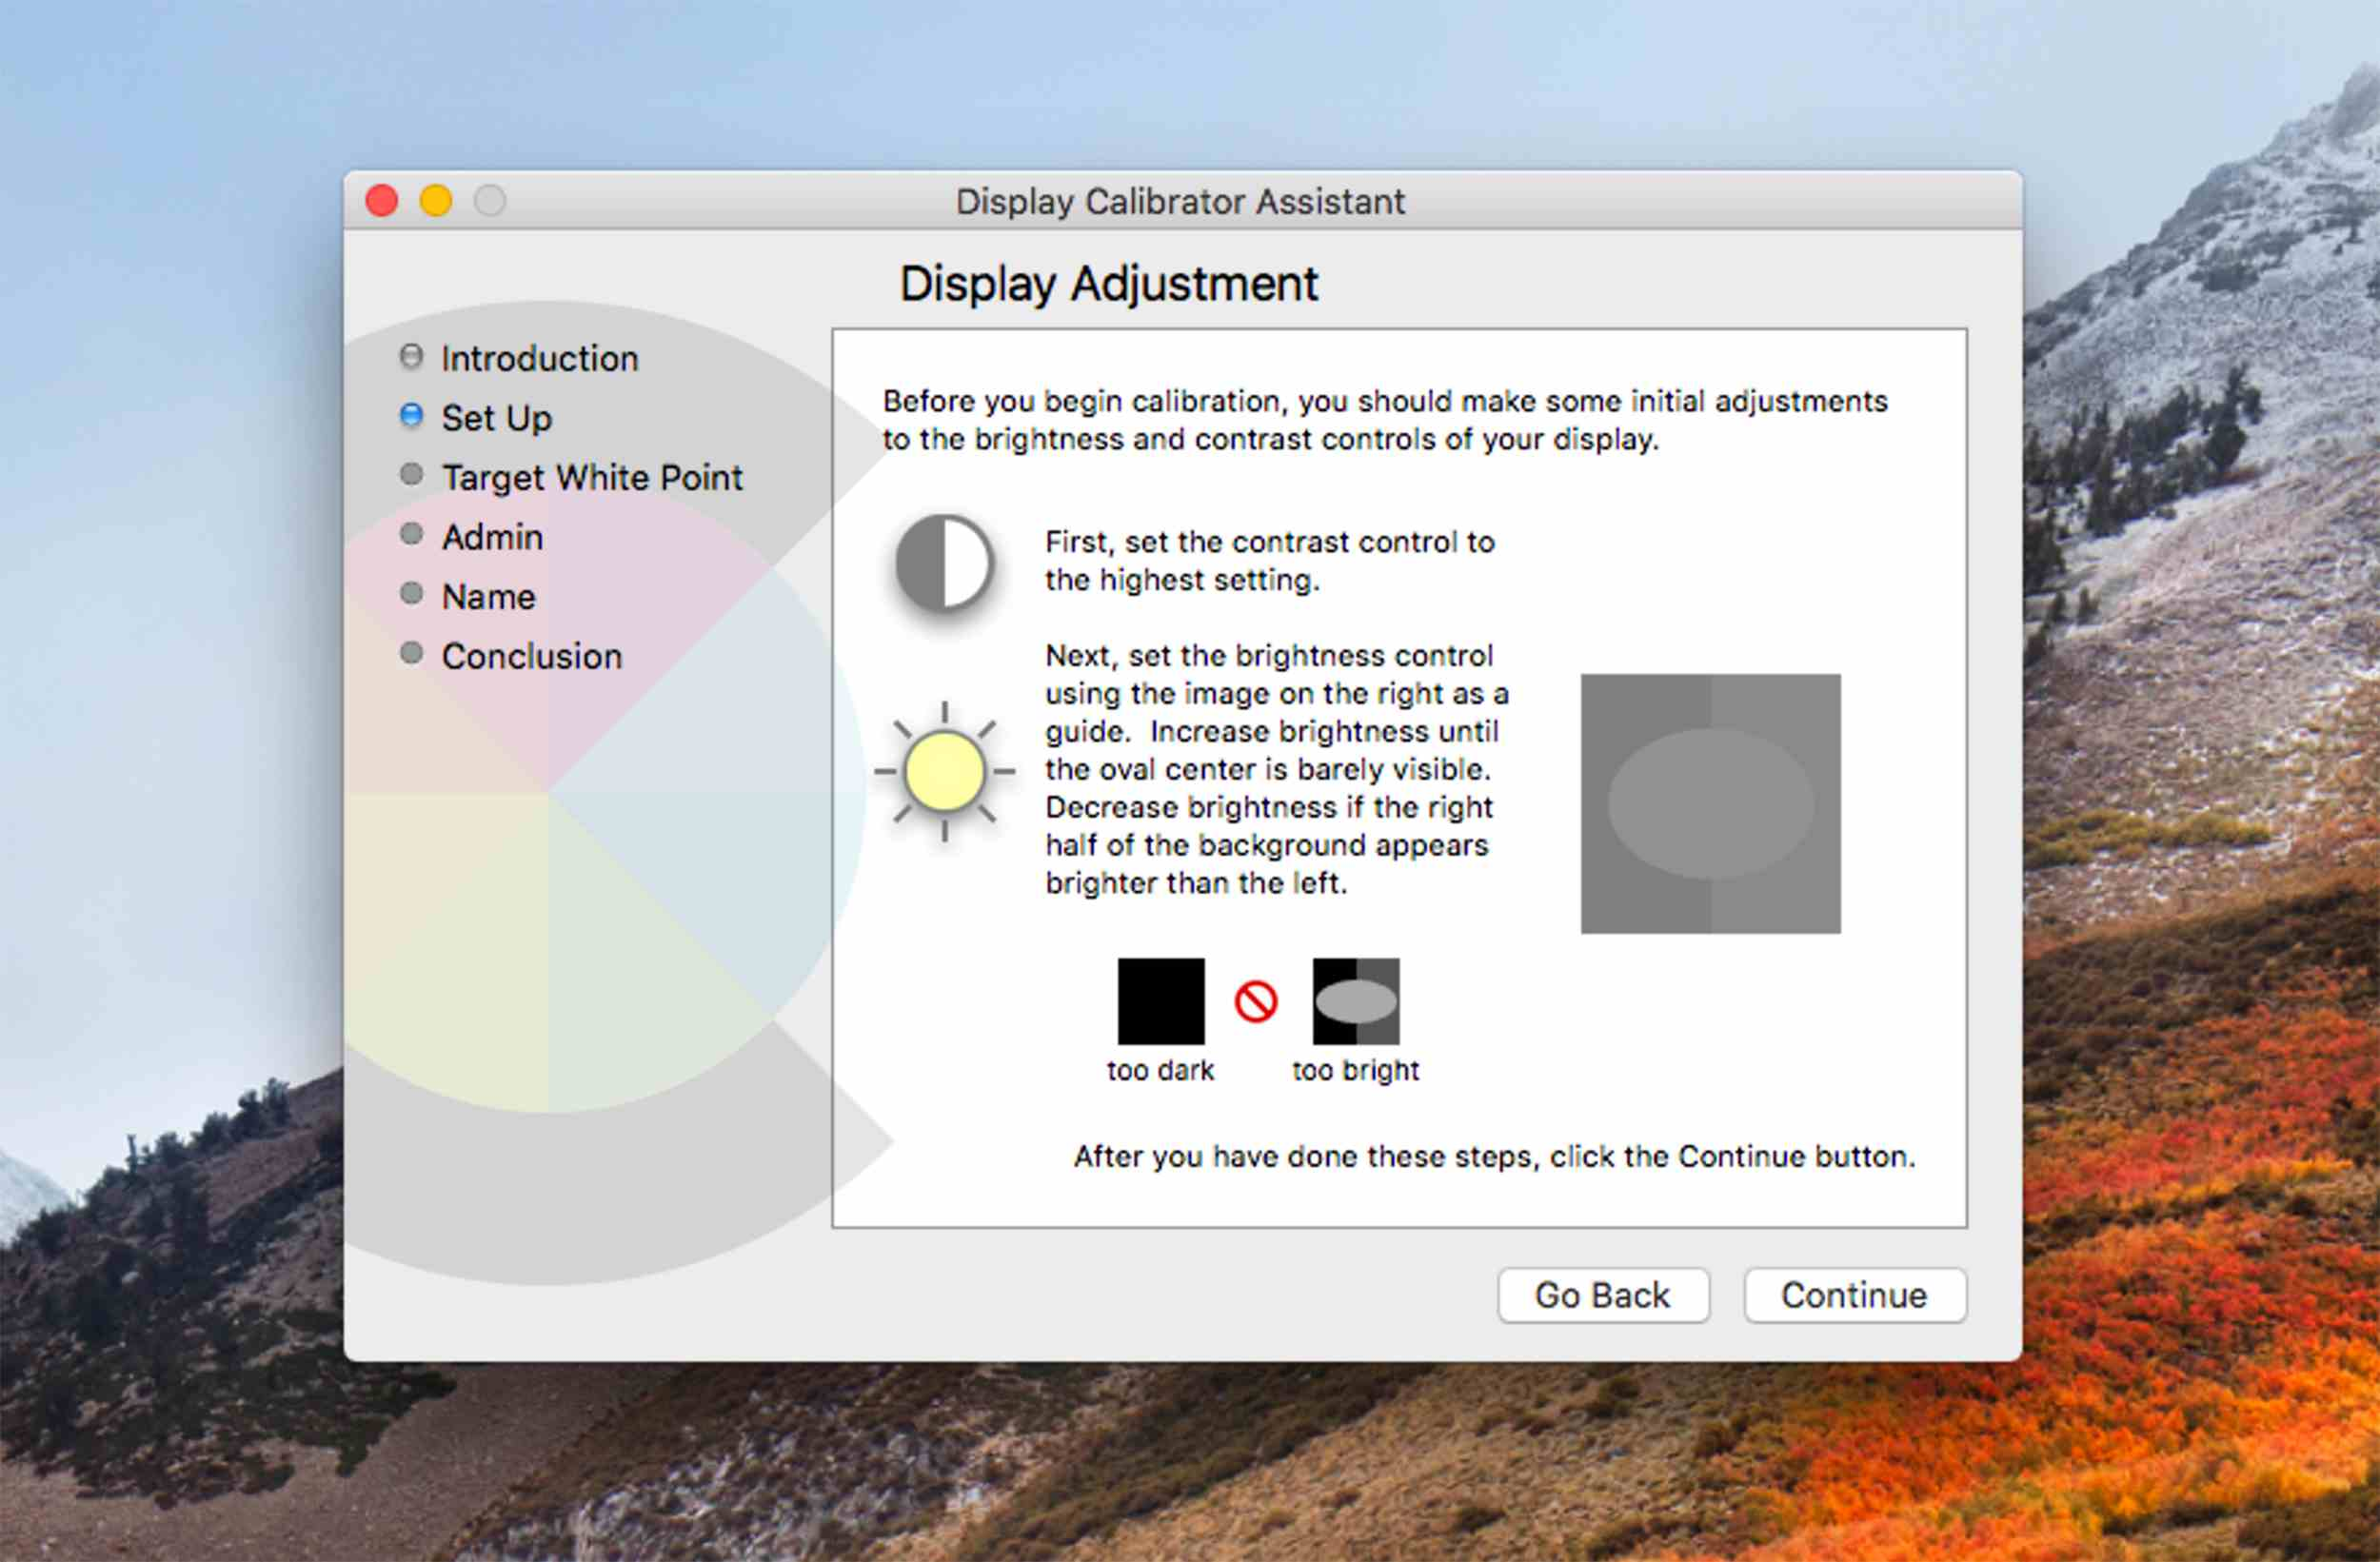 How to Use Your Mac's Display Calibrator Assistant